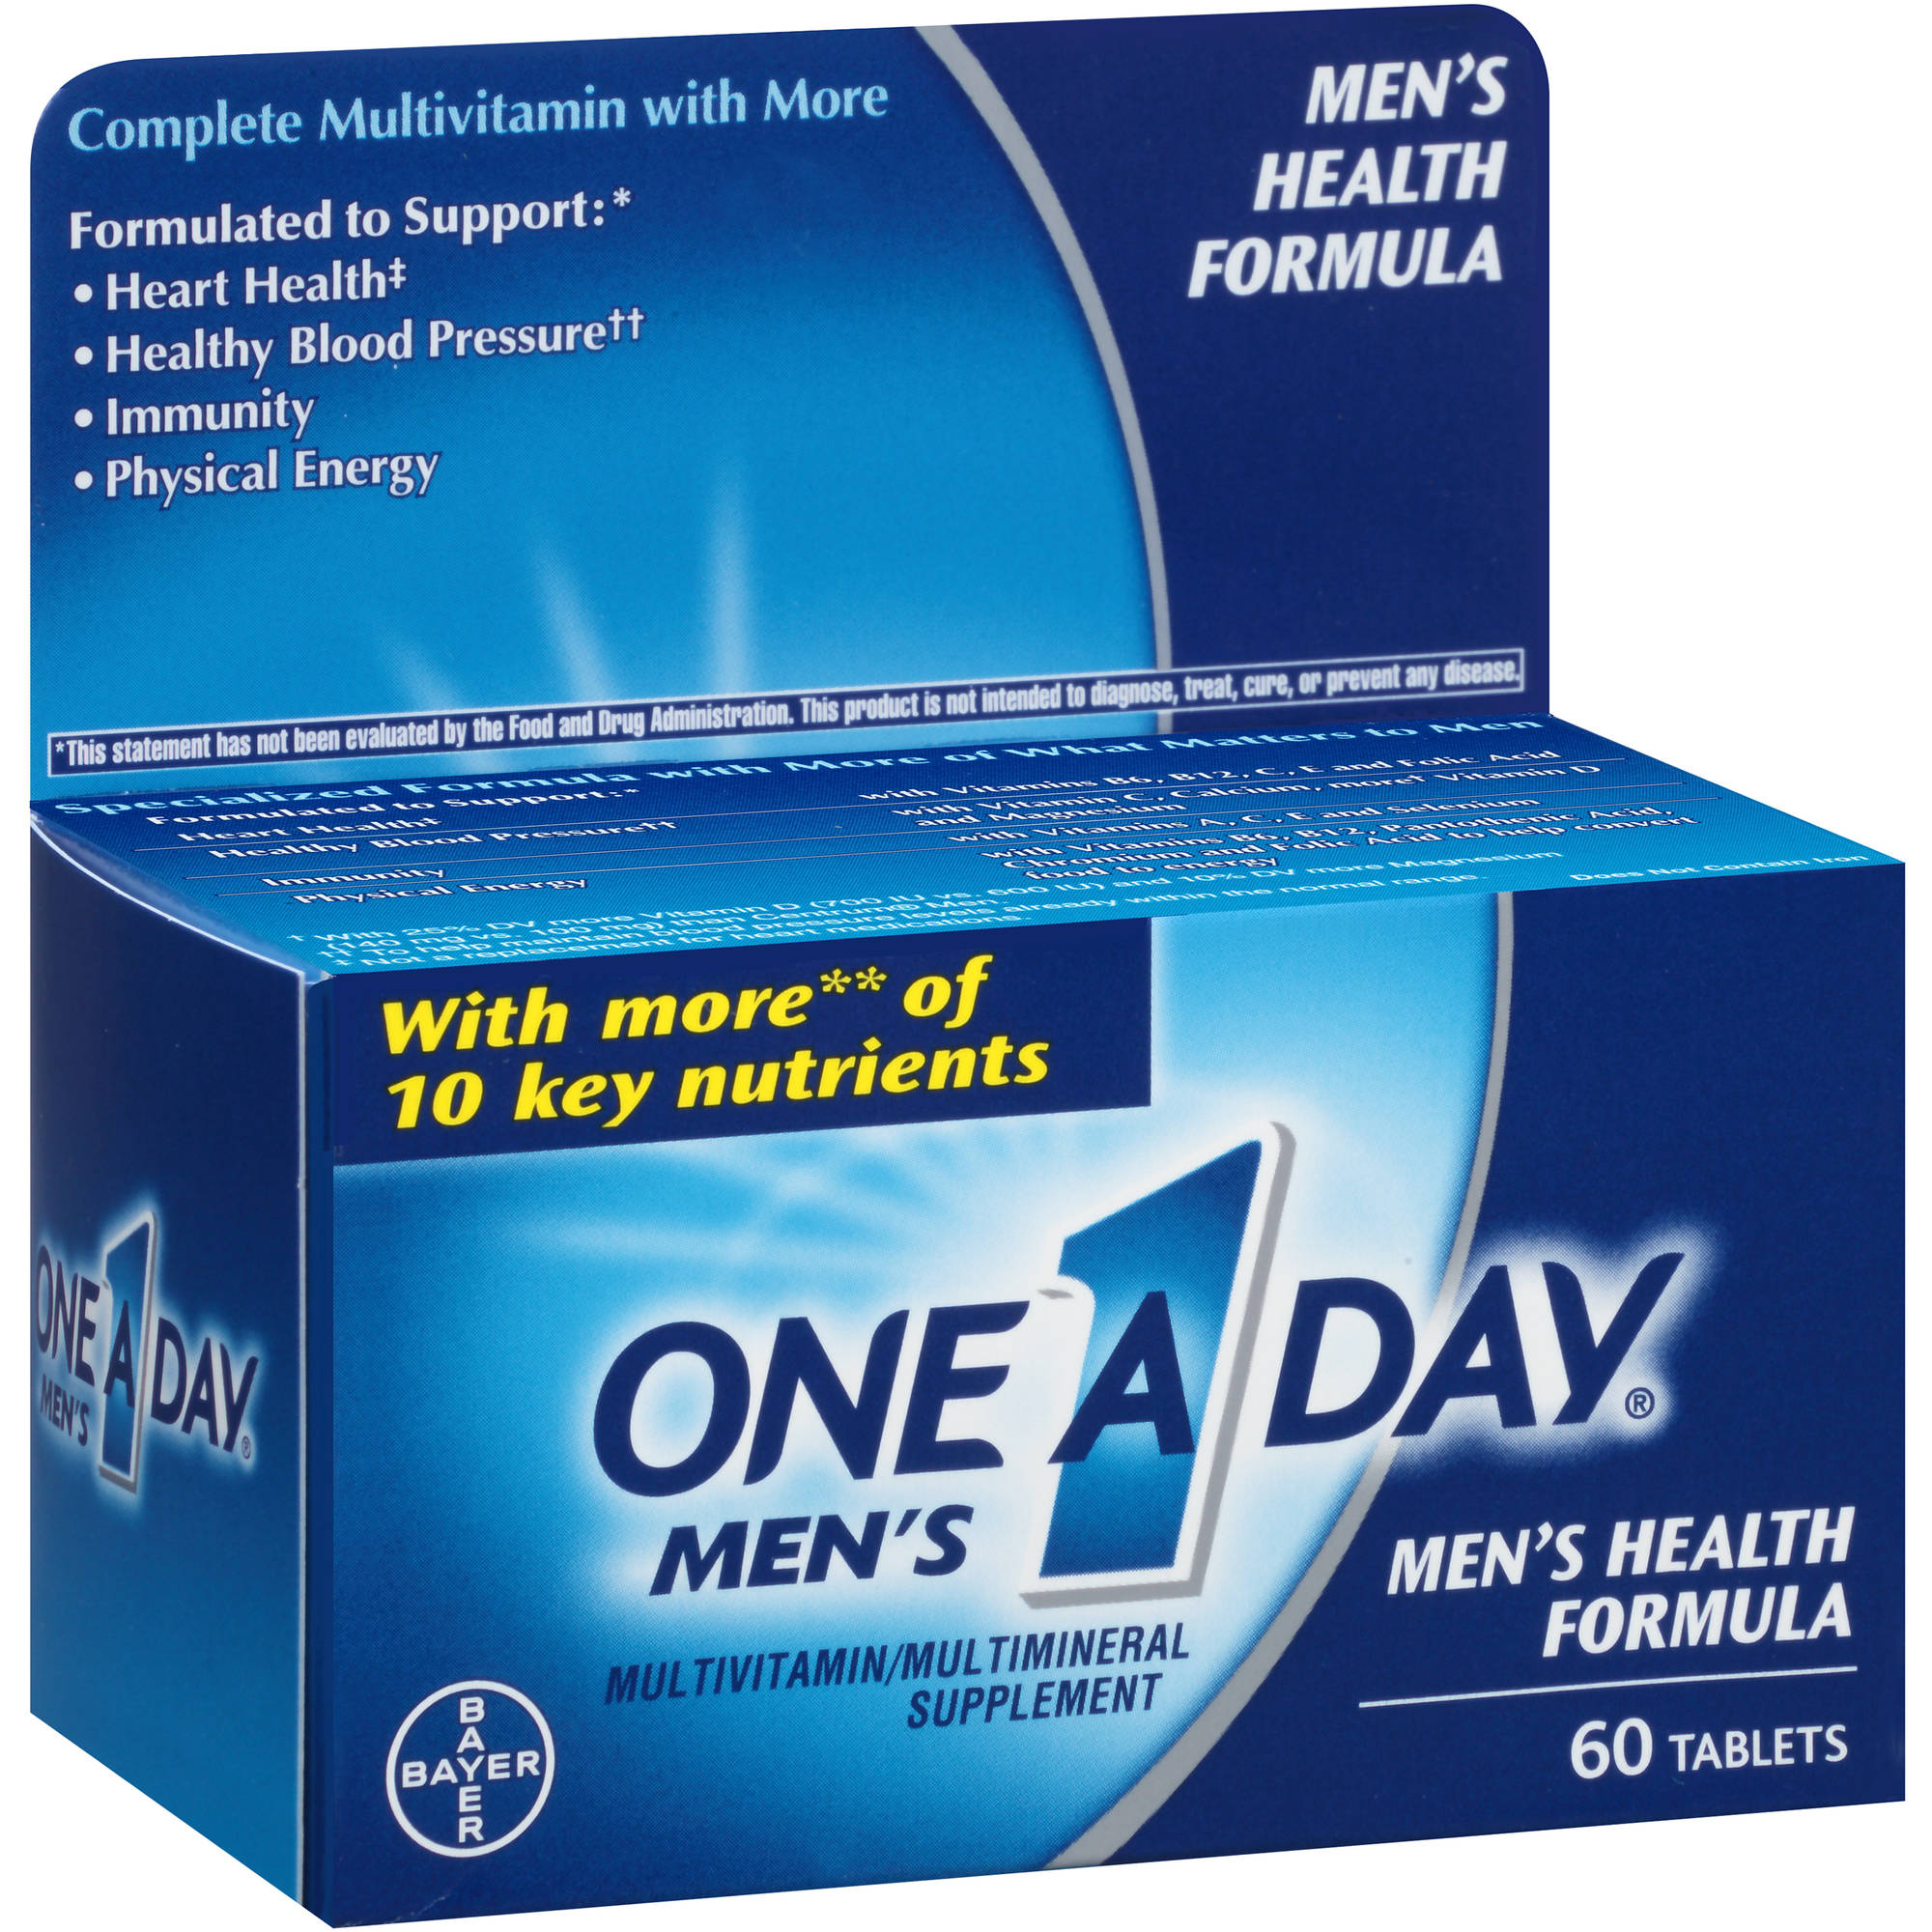 One A Day Men's Health Formula Multivitamin/Multimineral Supplement Tablets, 60 count